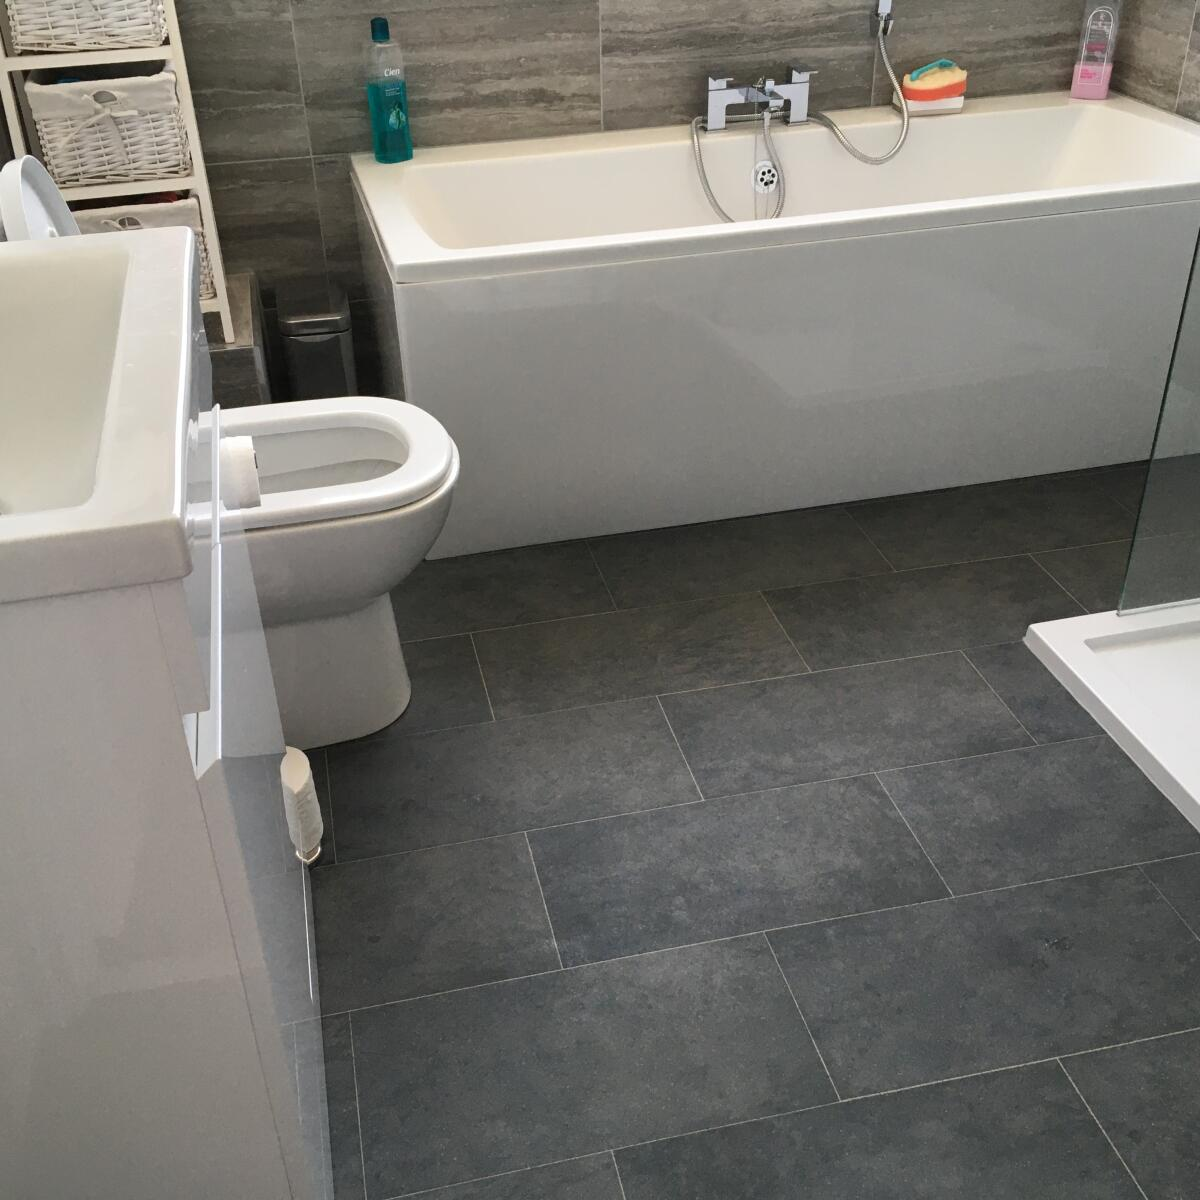 Remland Carpets 5 star review on 12th July 2020